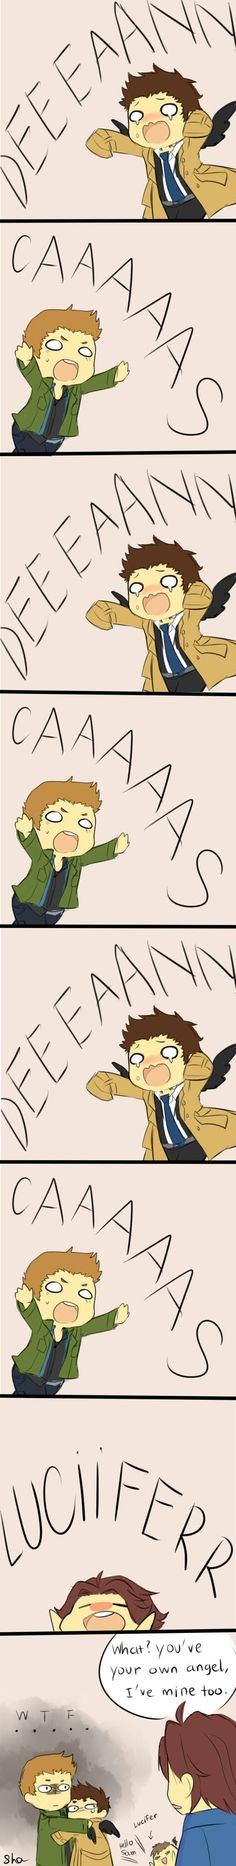 Destiel Strip 2 by ShaStrider.deviantart.com on @deviantART(Dangit Luci!)